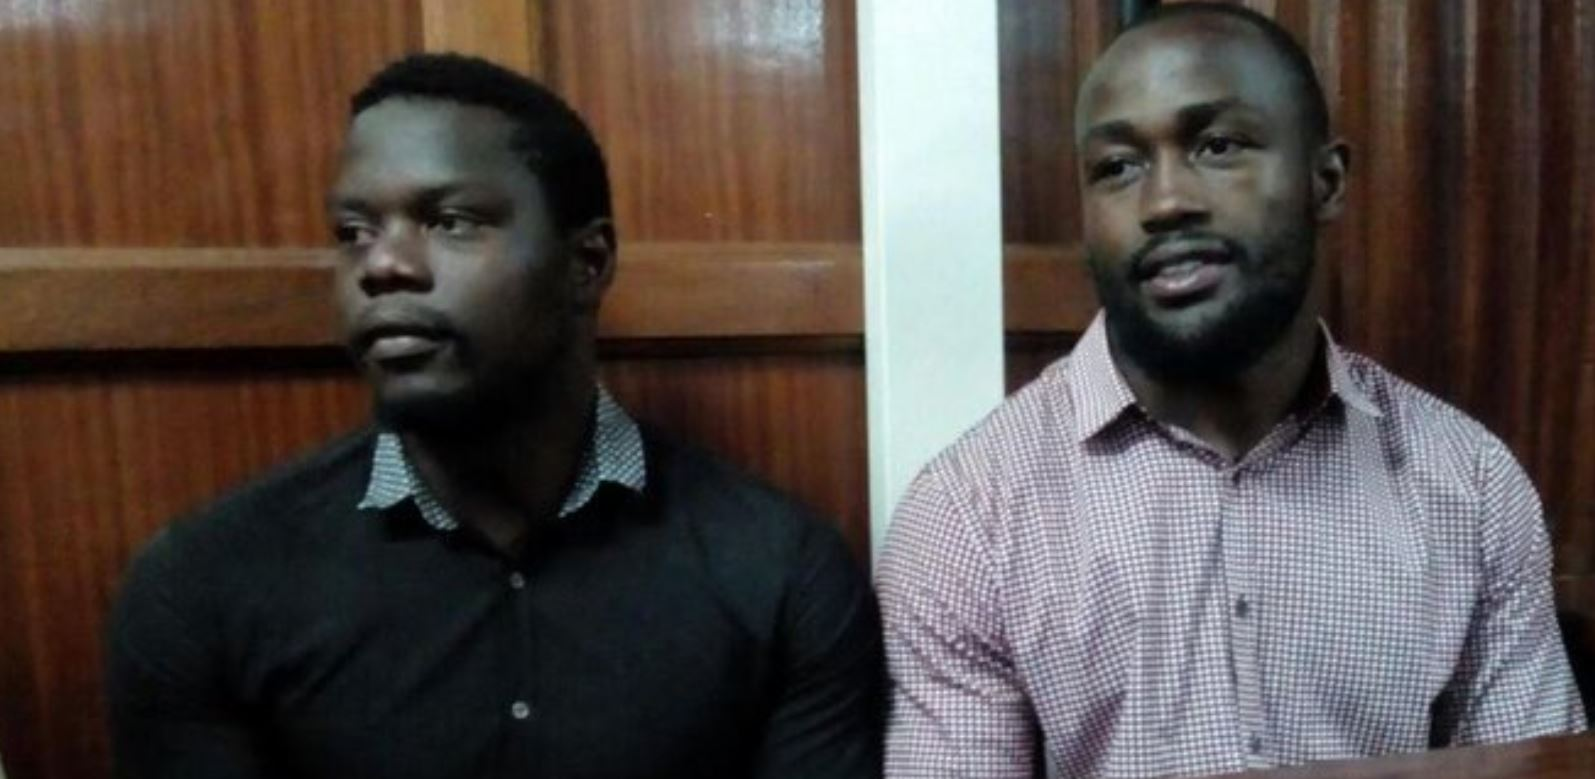 Judges Ruling on the sentencing of Rugby Players Alex Mahaga and Frank Wanyama over rape case